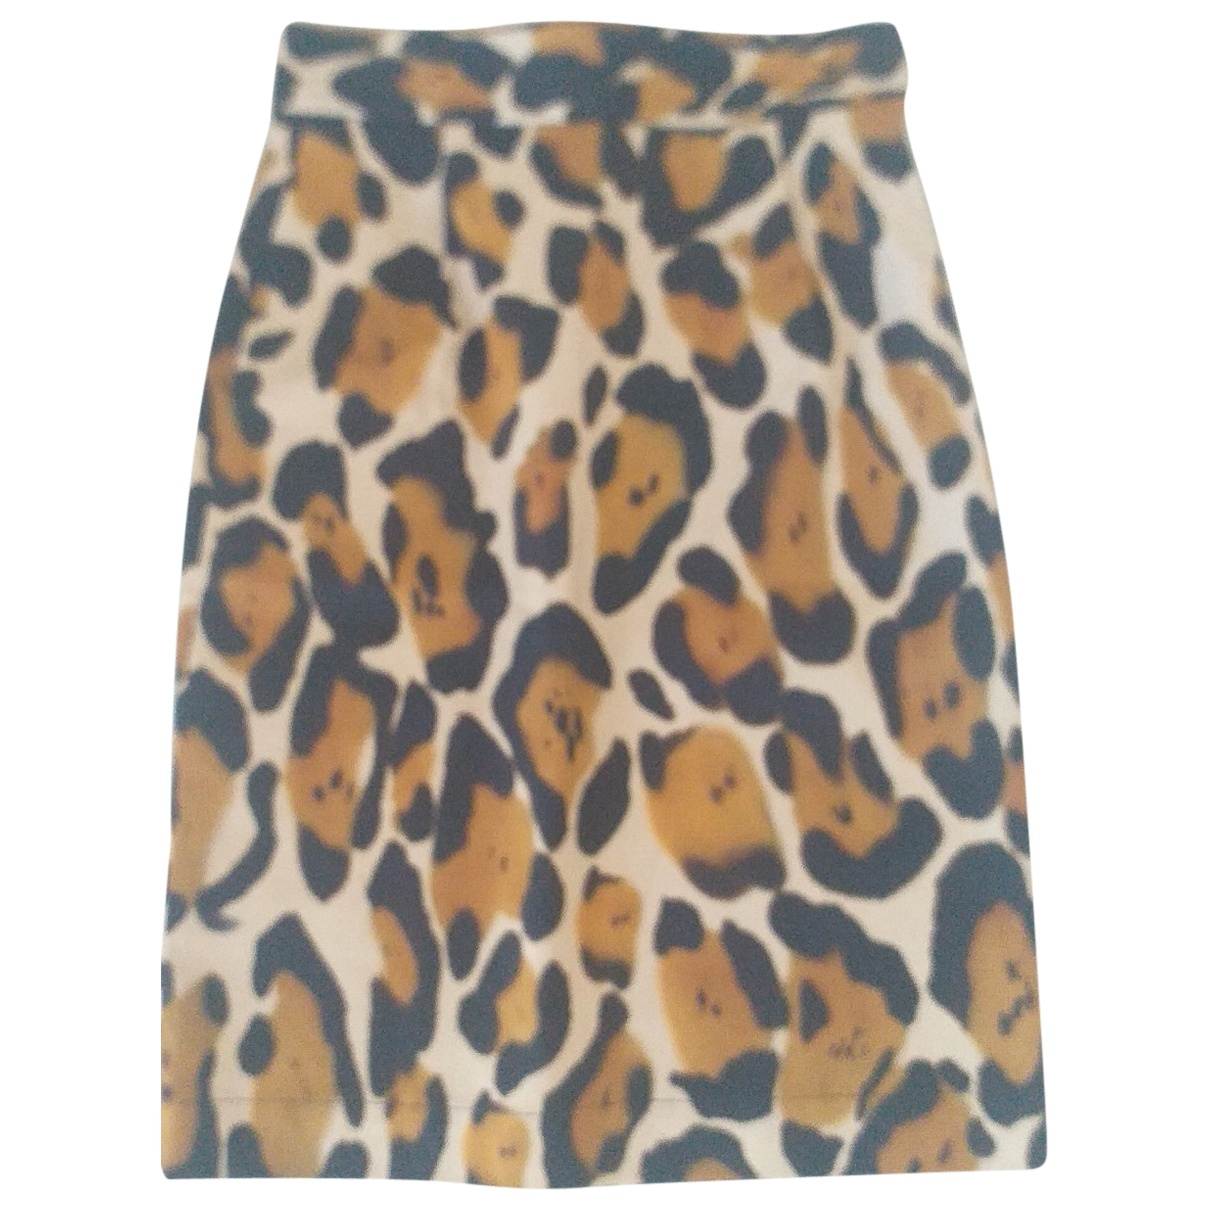 Vivienne Westwood \N Camel Cotton skirt for Women 38 IT